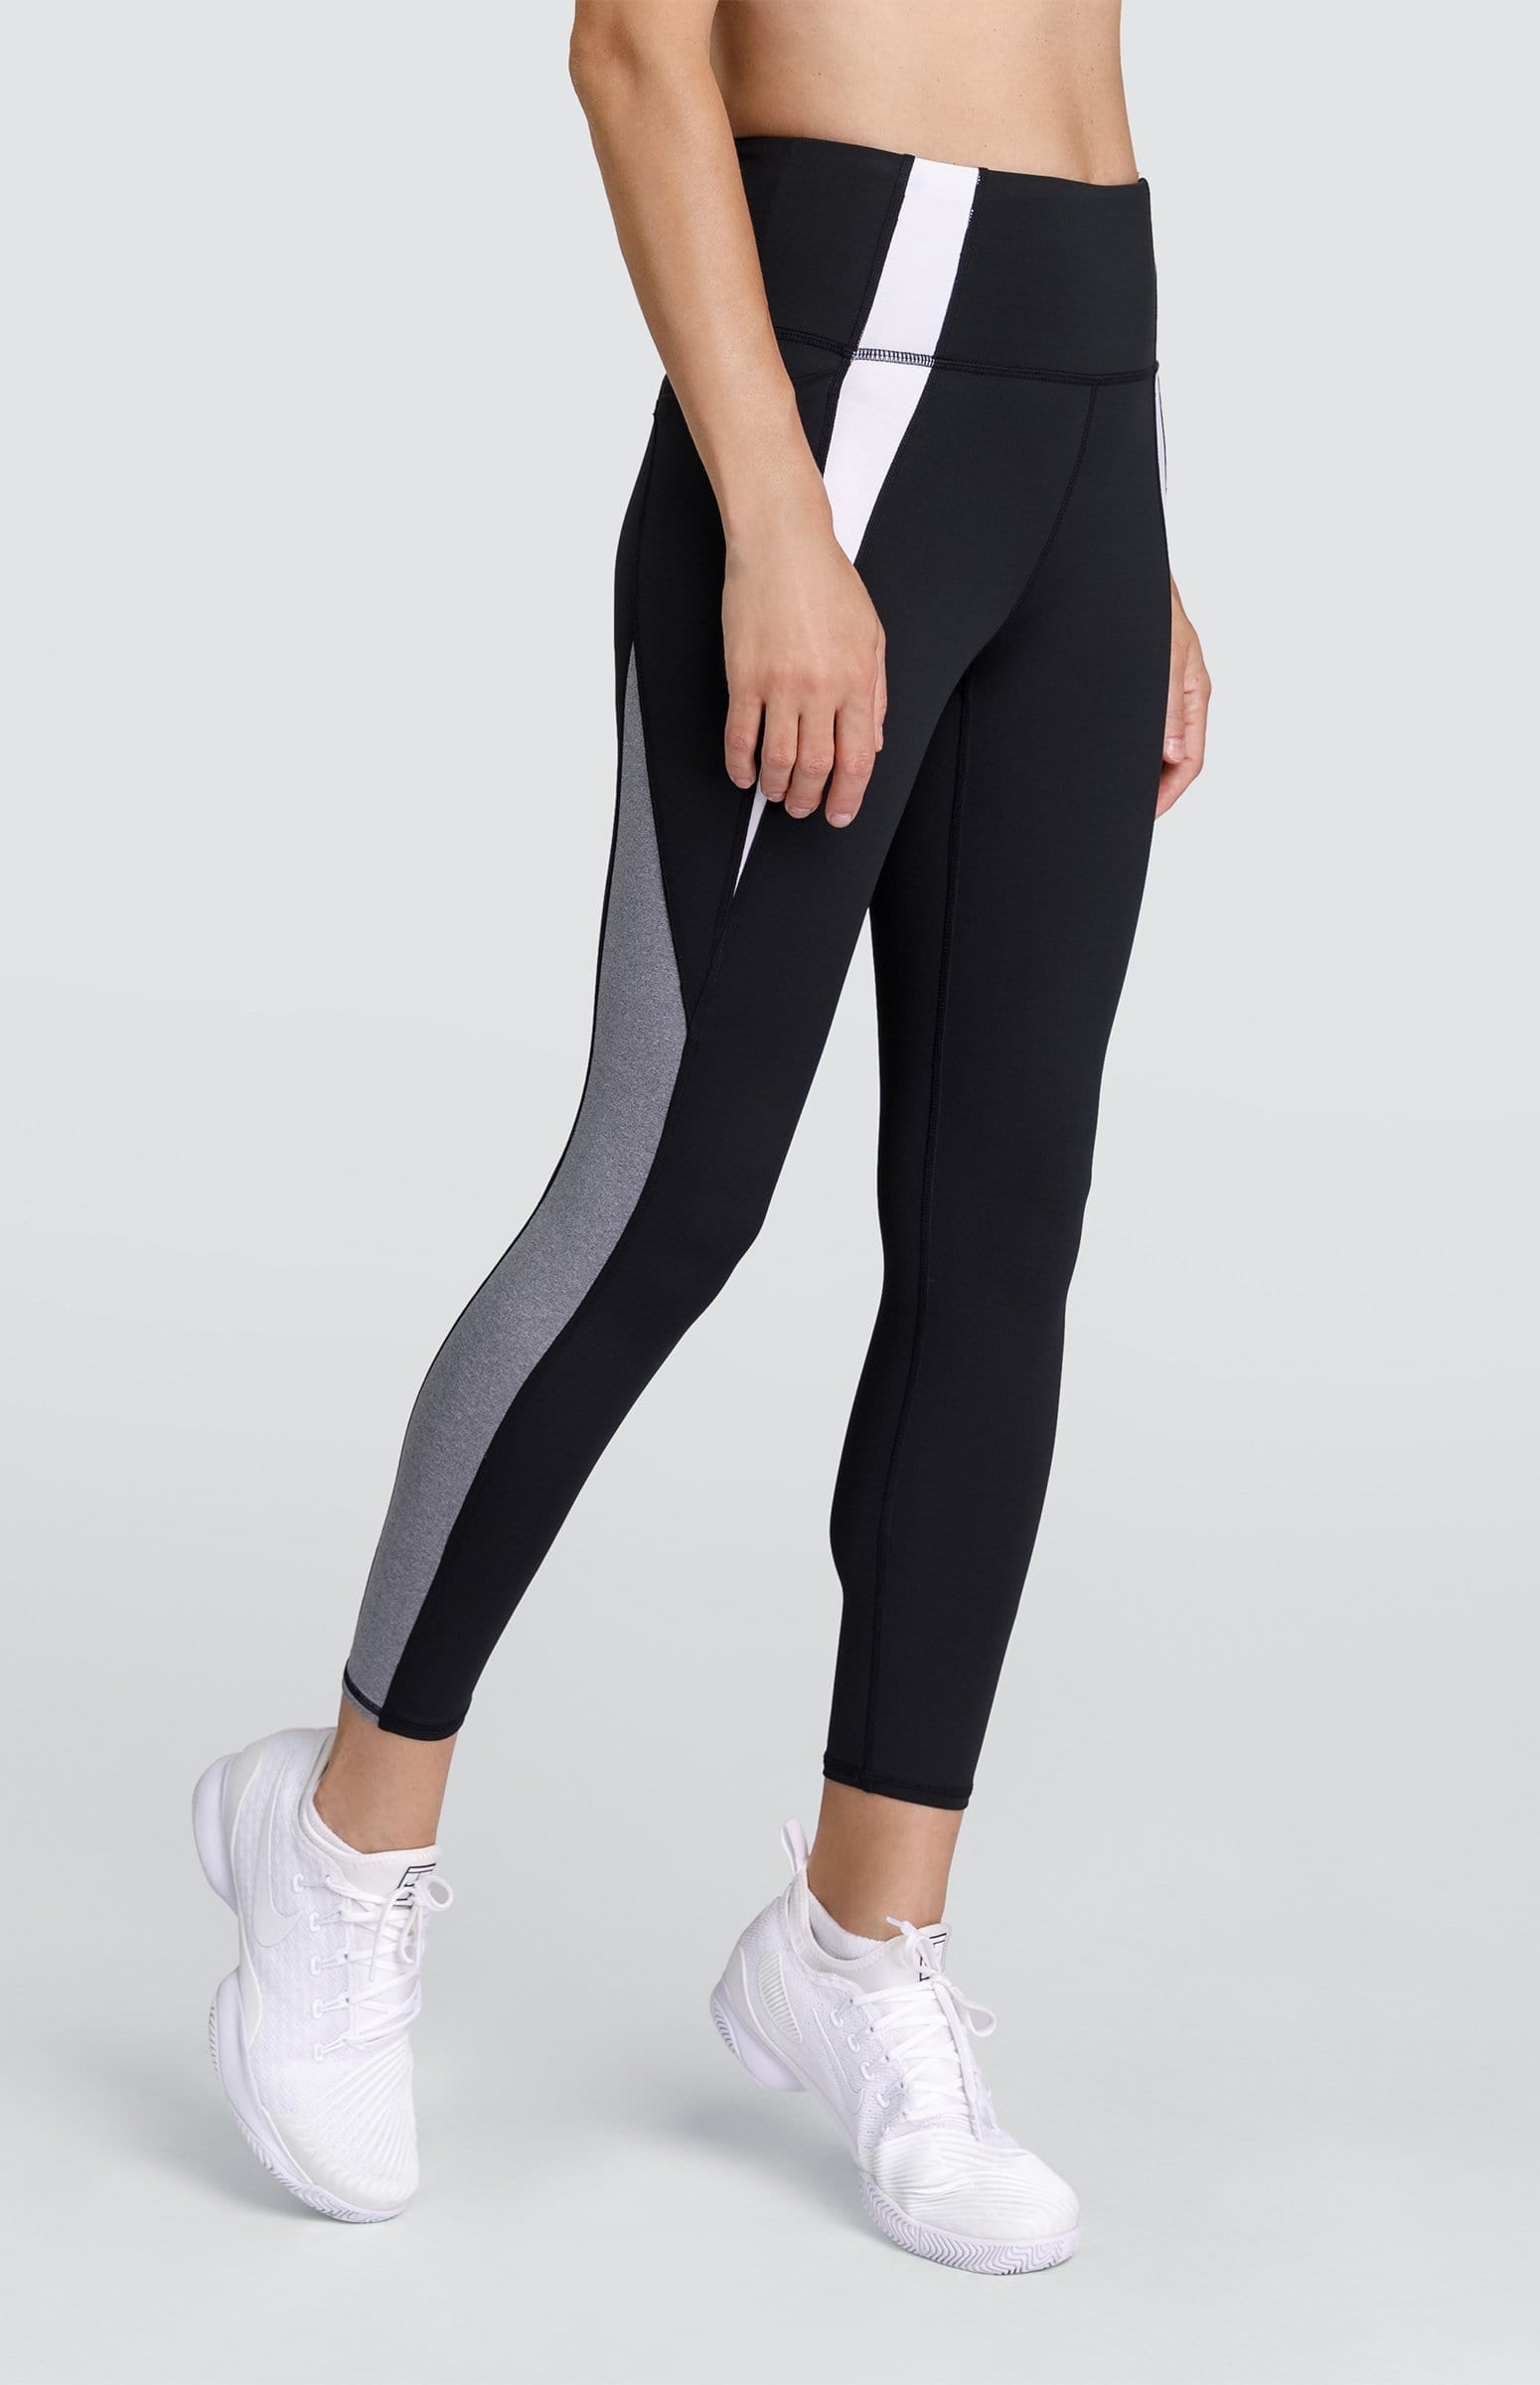 Leia Leggings - Black